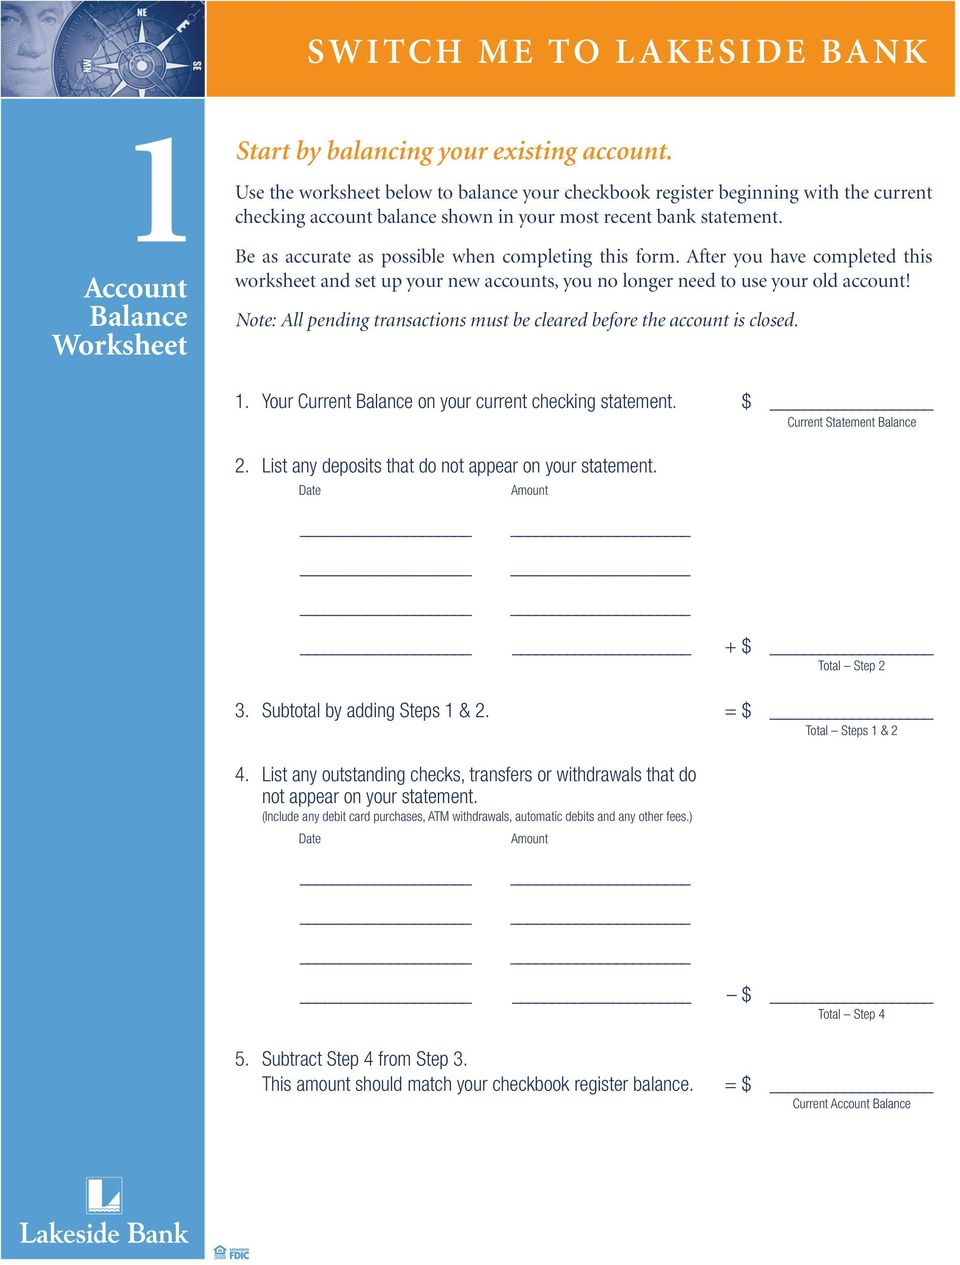 Be as accurate as possible when completing this form. After you have completed this worksheet and set up your new accounts, you no longer need to use your old account!